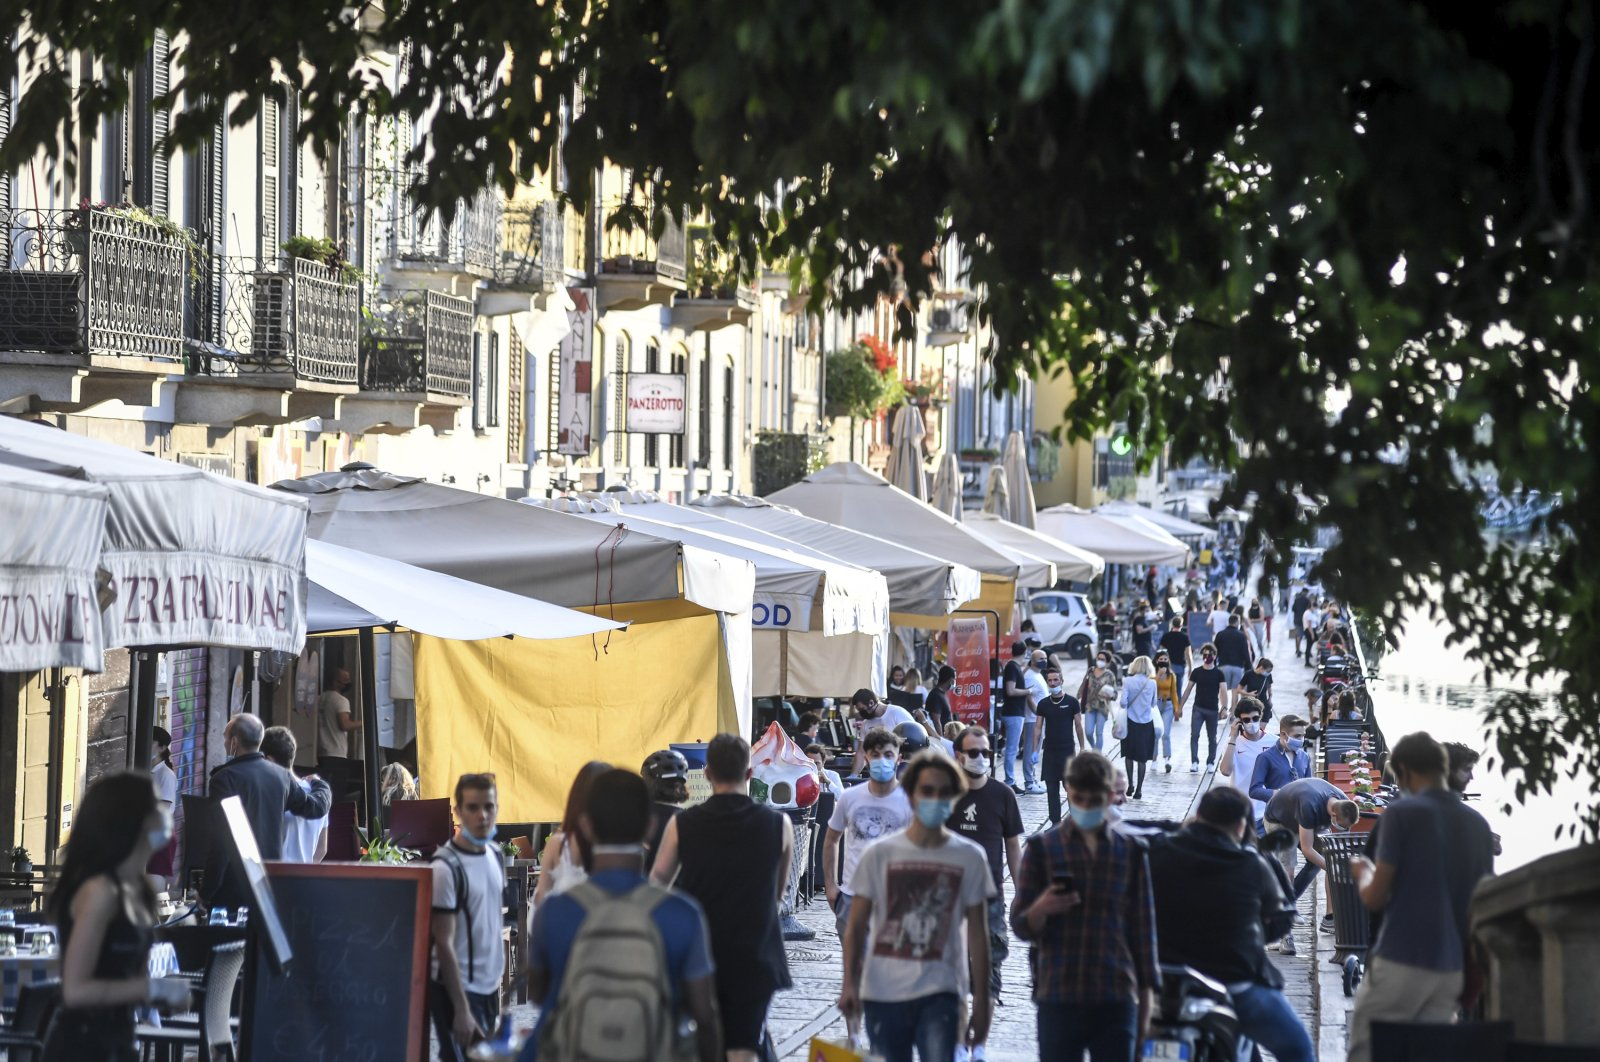 People walk in the city's trendy Navigli district in Milan, Italy, May 26, 2020. (AP Photo)